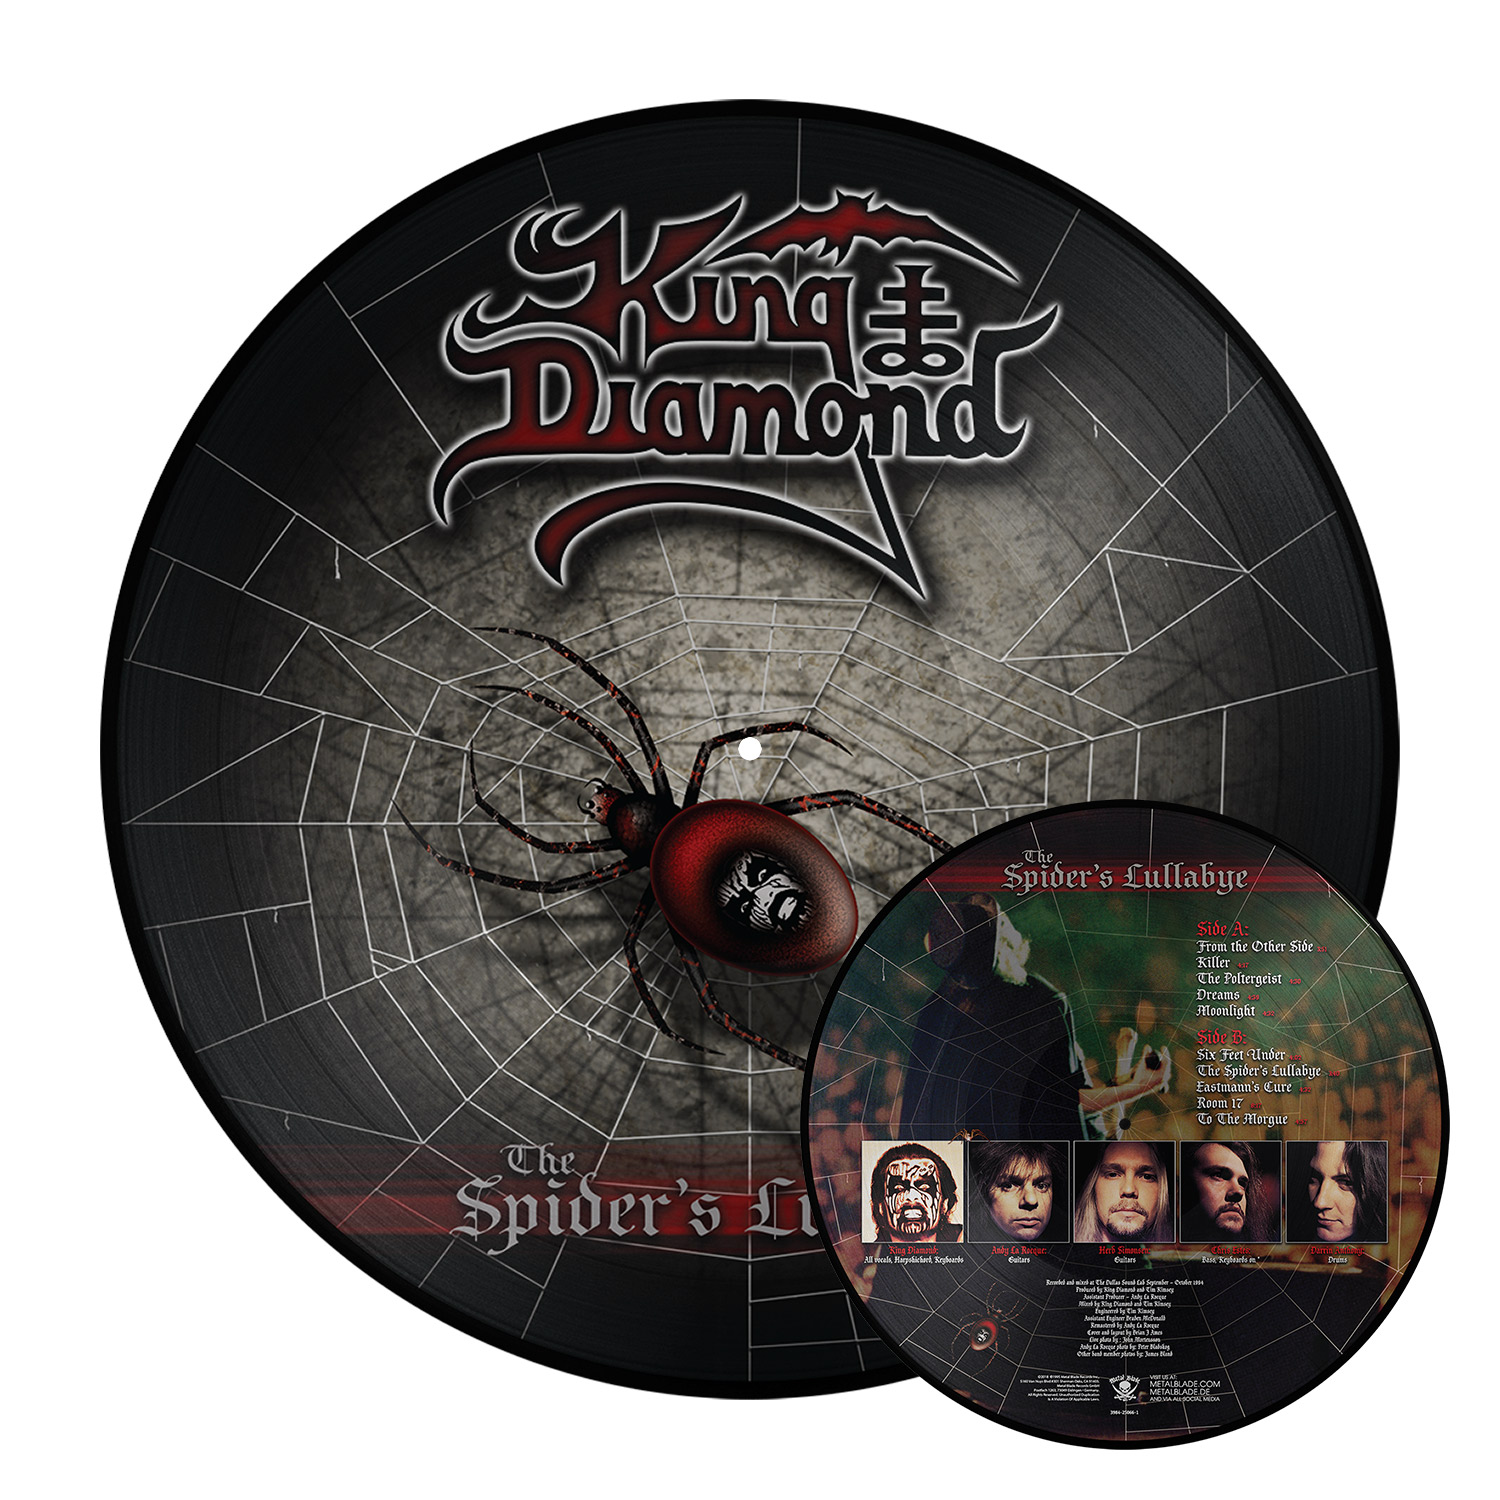 The Spider's Lullabye (Picture Disc)